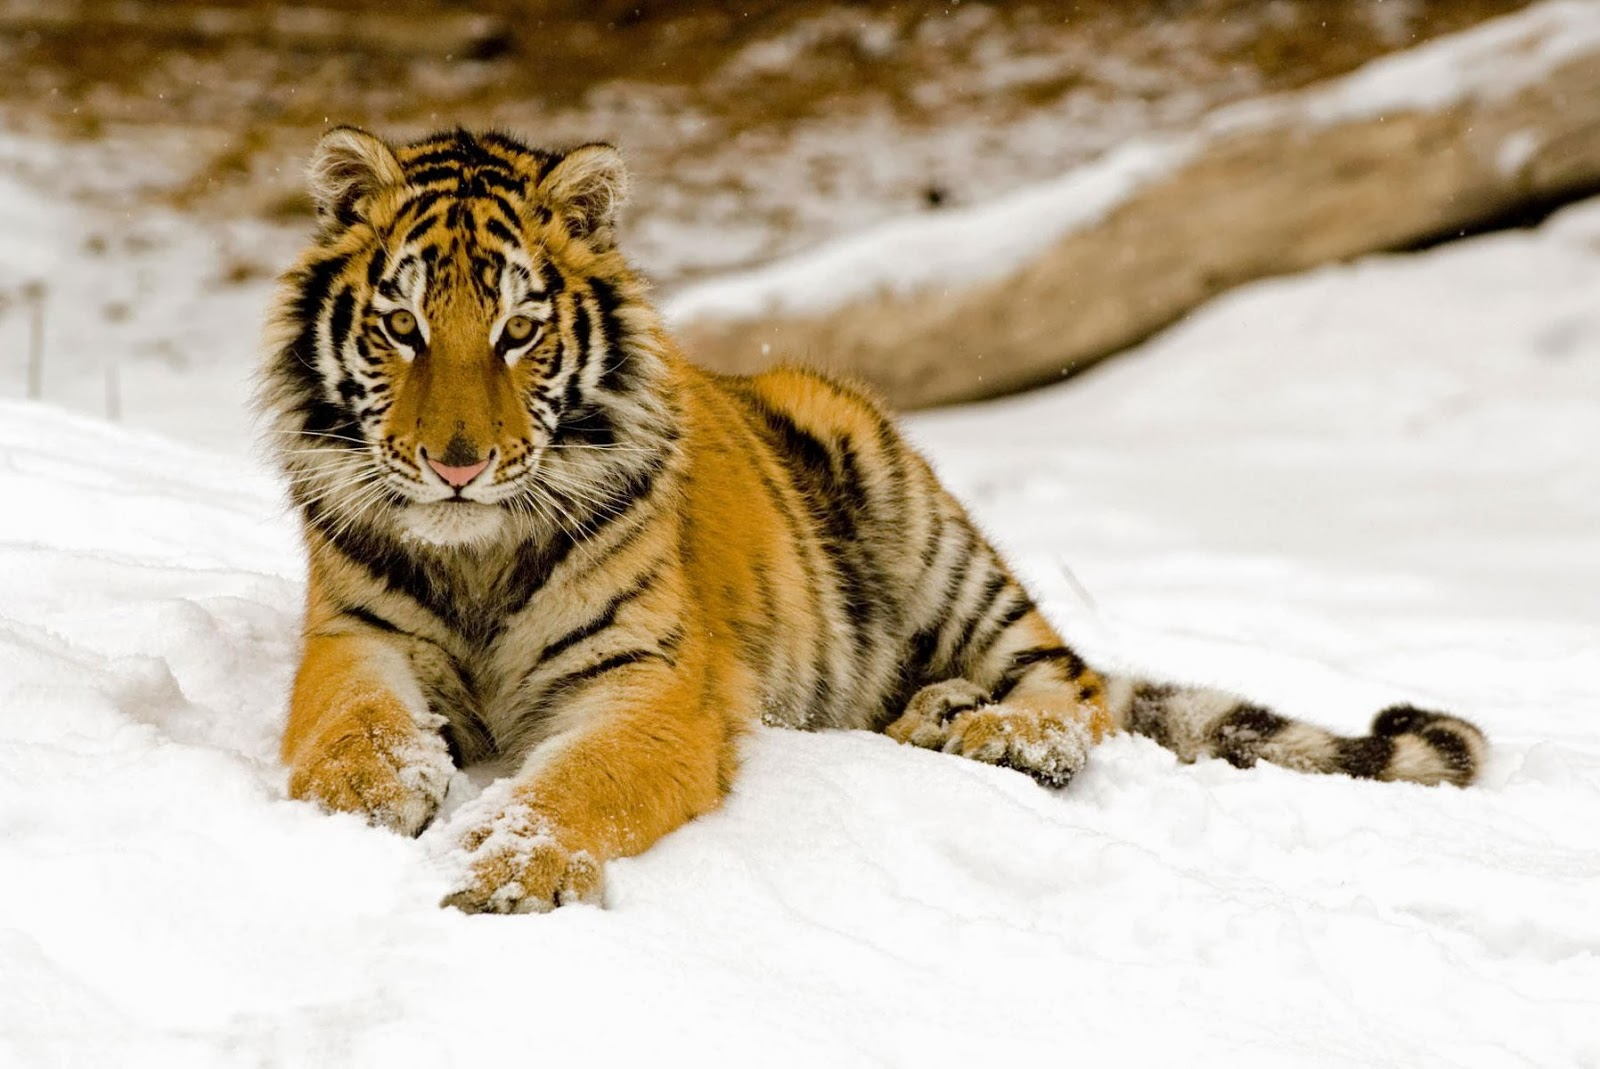 snowy afternoon tiger wallpapers - Snowy Afternoon Tiger Wallpapers HD Wallpapers